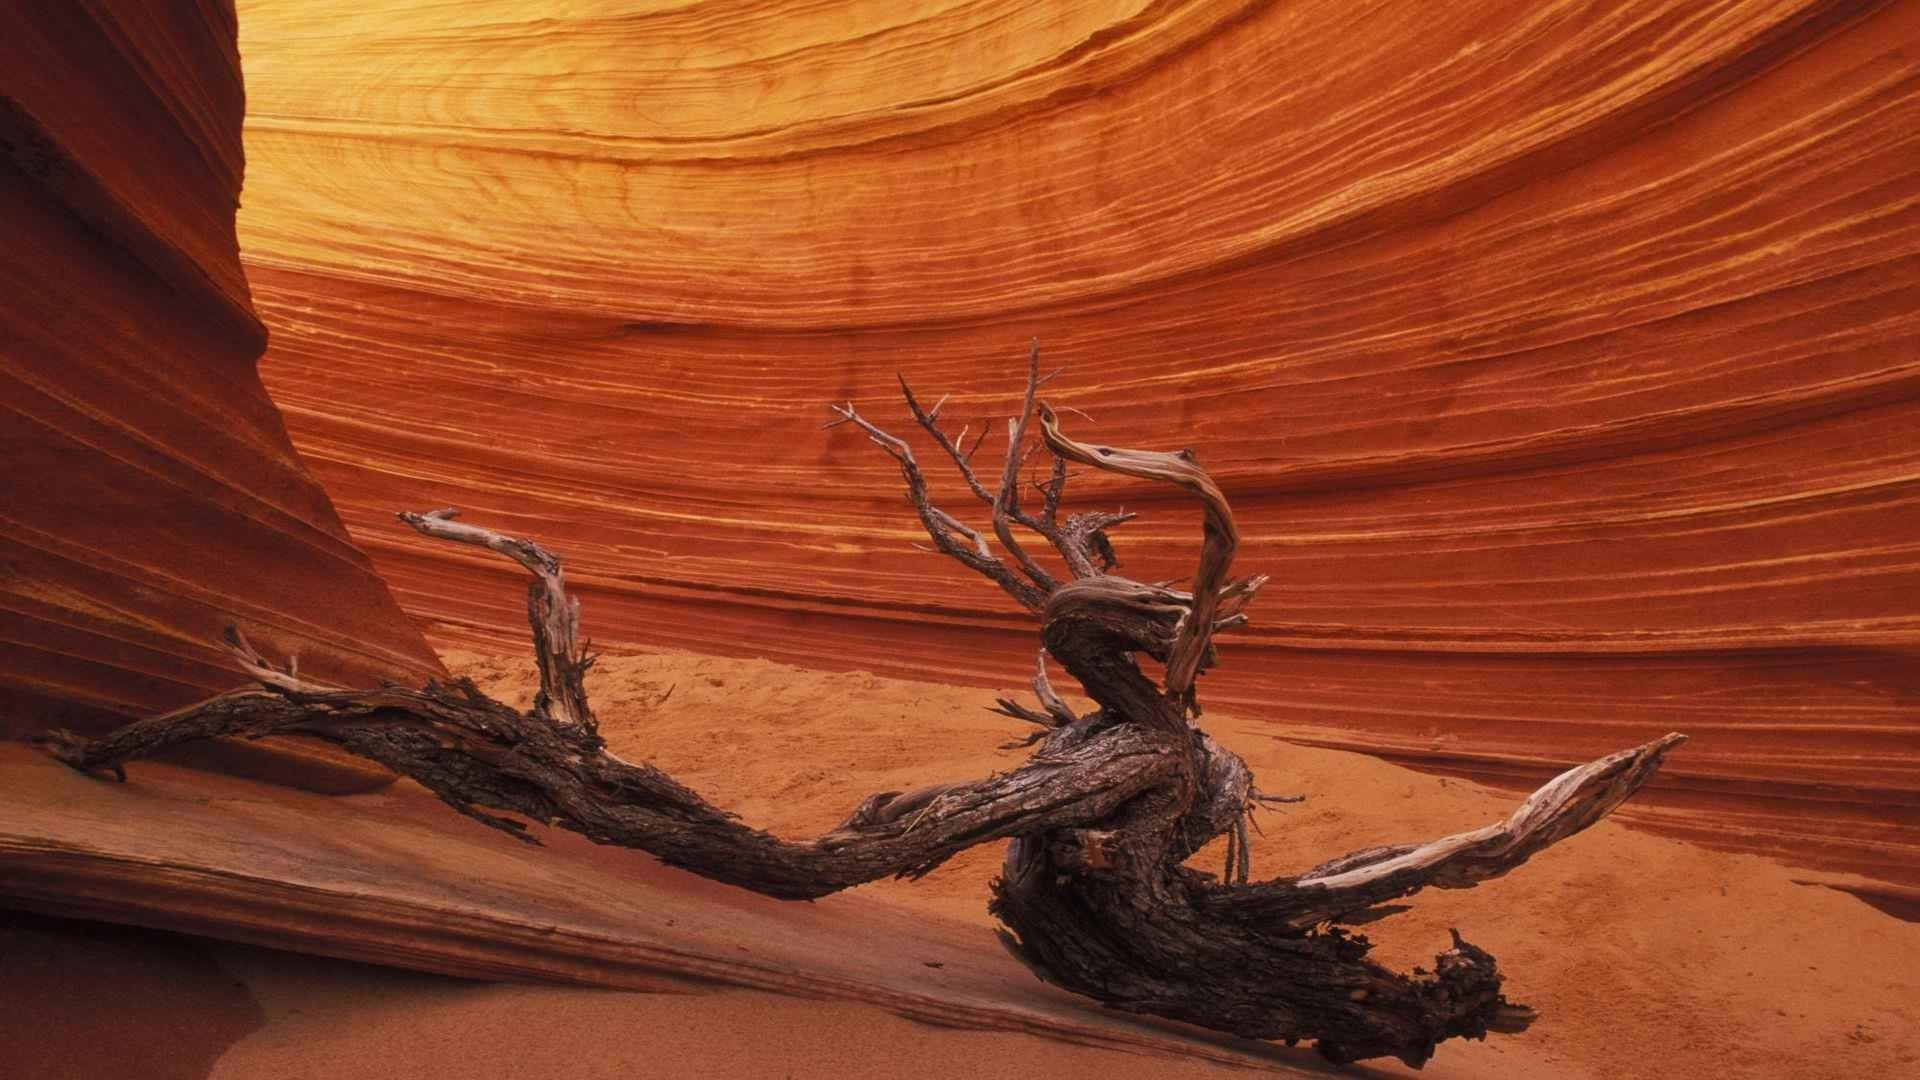 Antelope Canyon Photography Wallpapers 50997 1920x1080 px